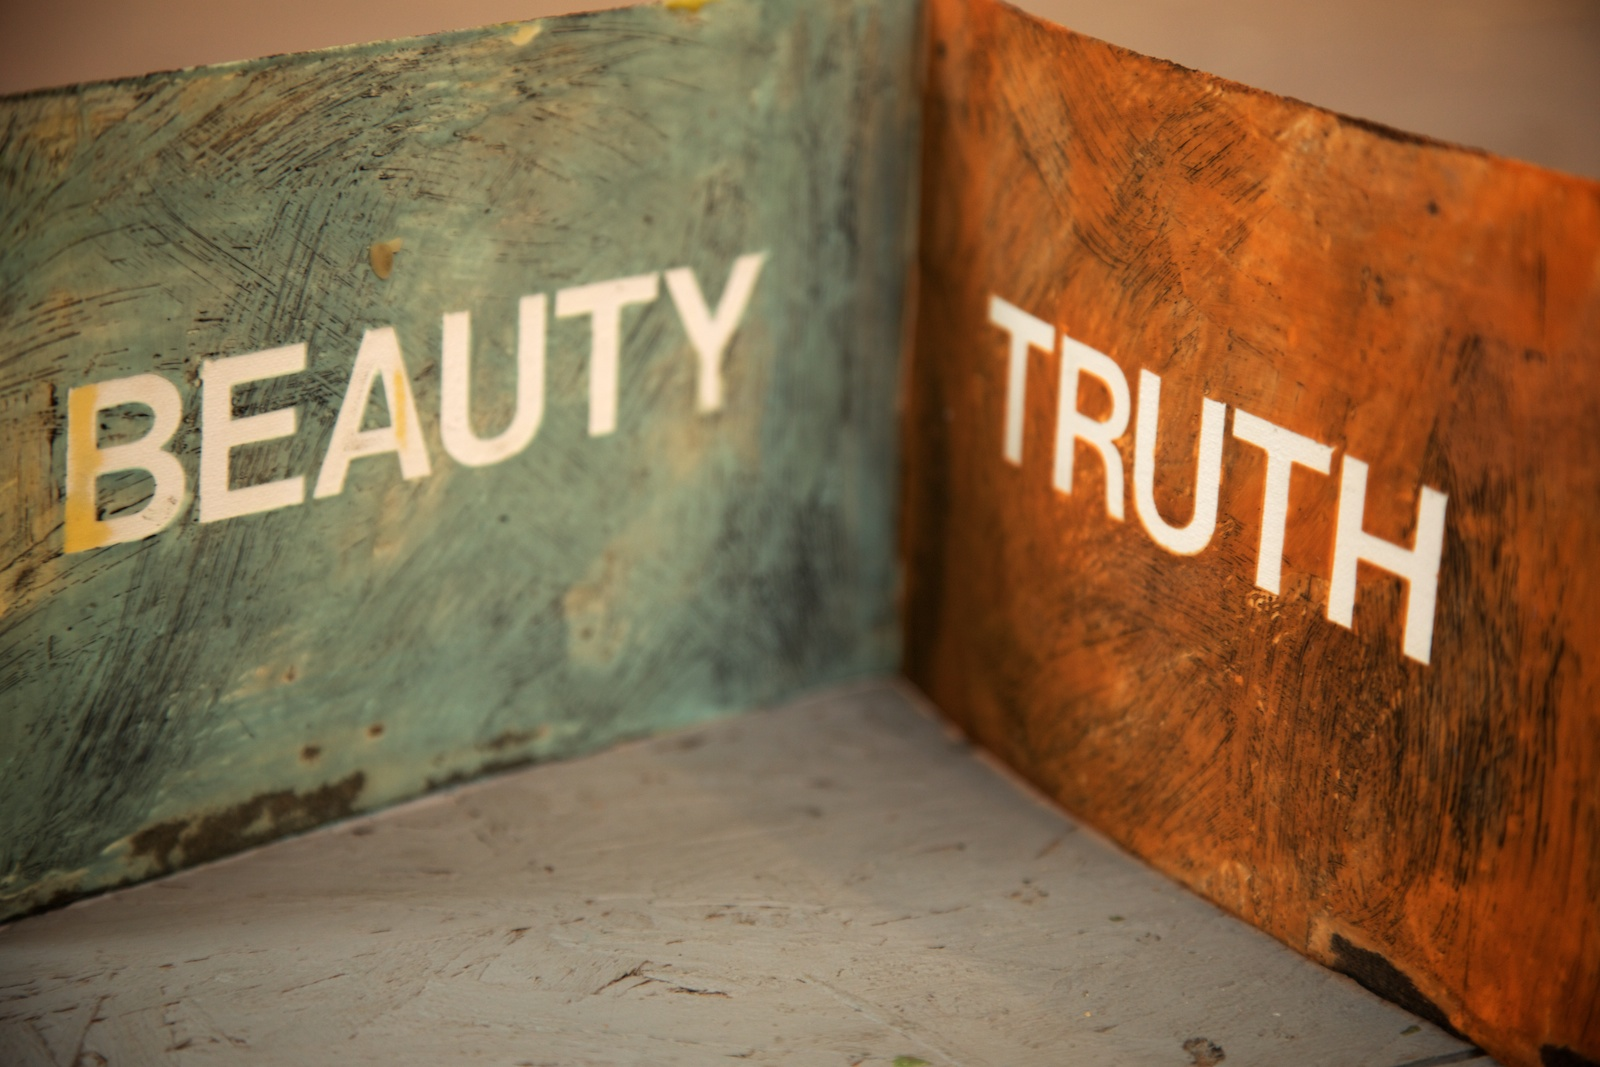 Truth Beauty Chaos